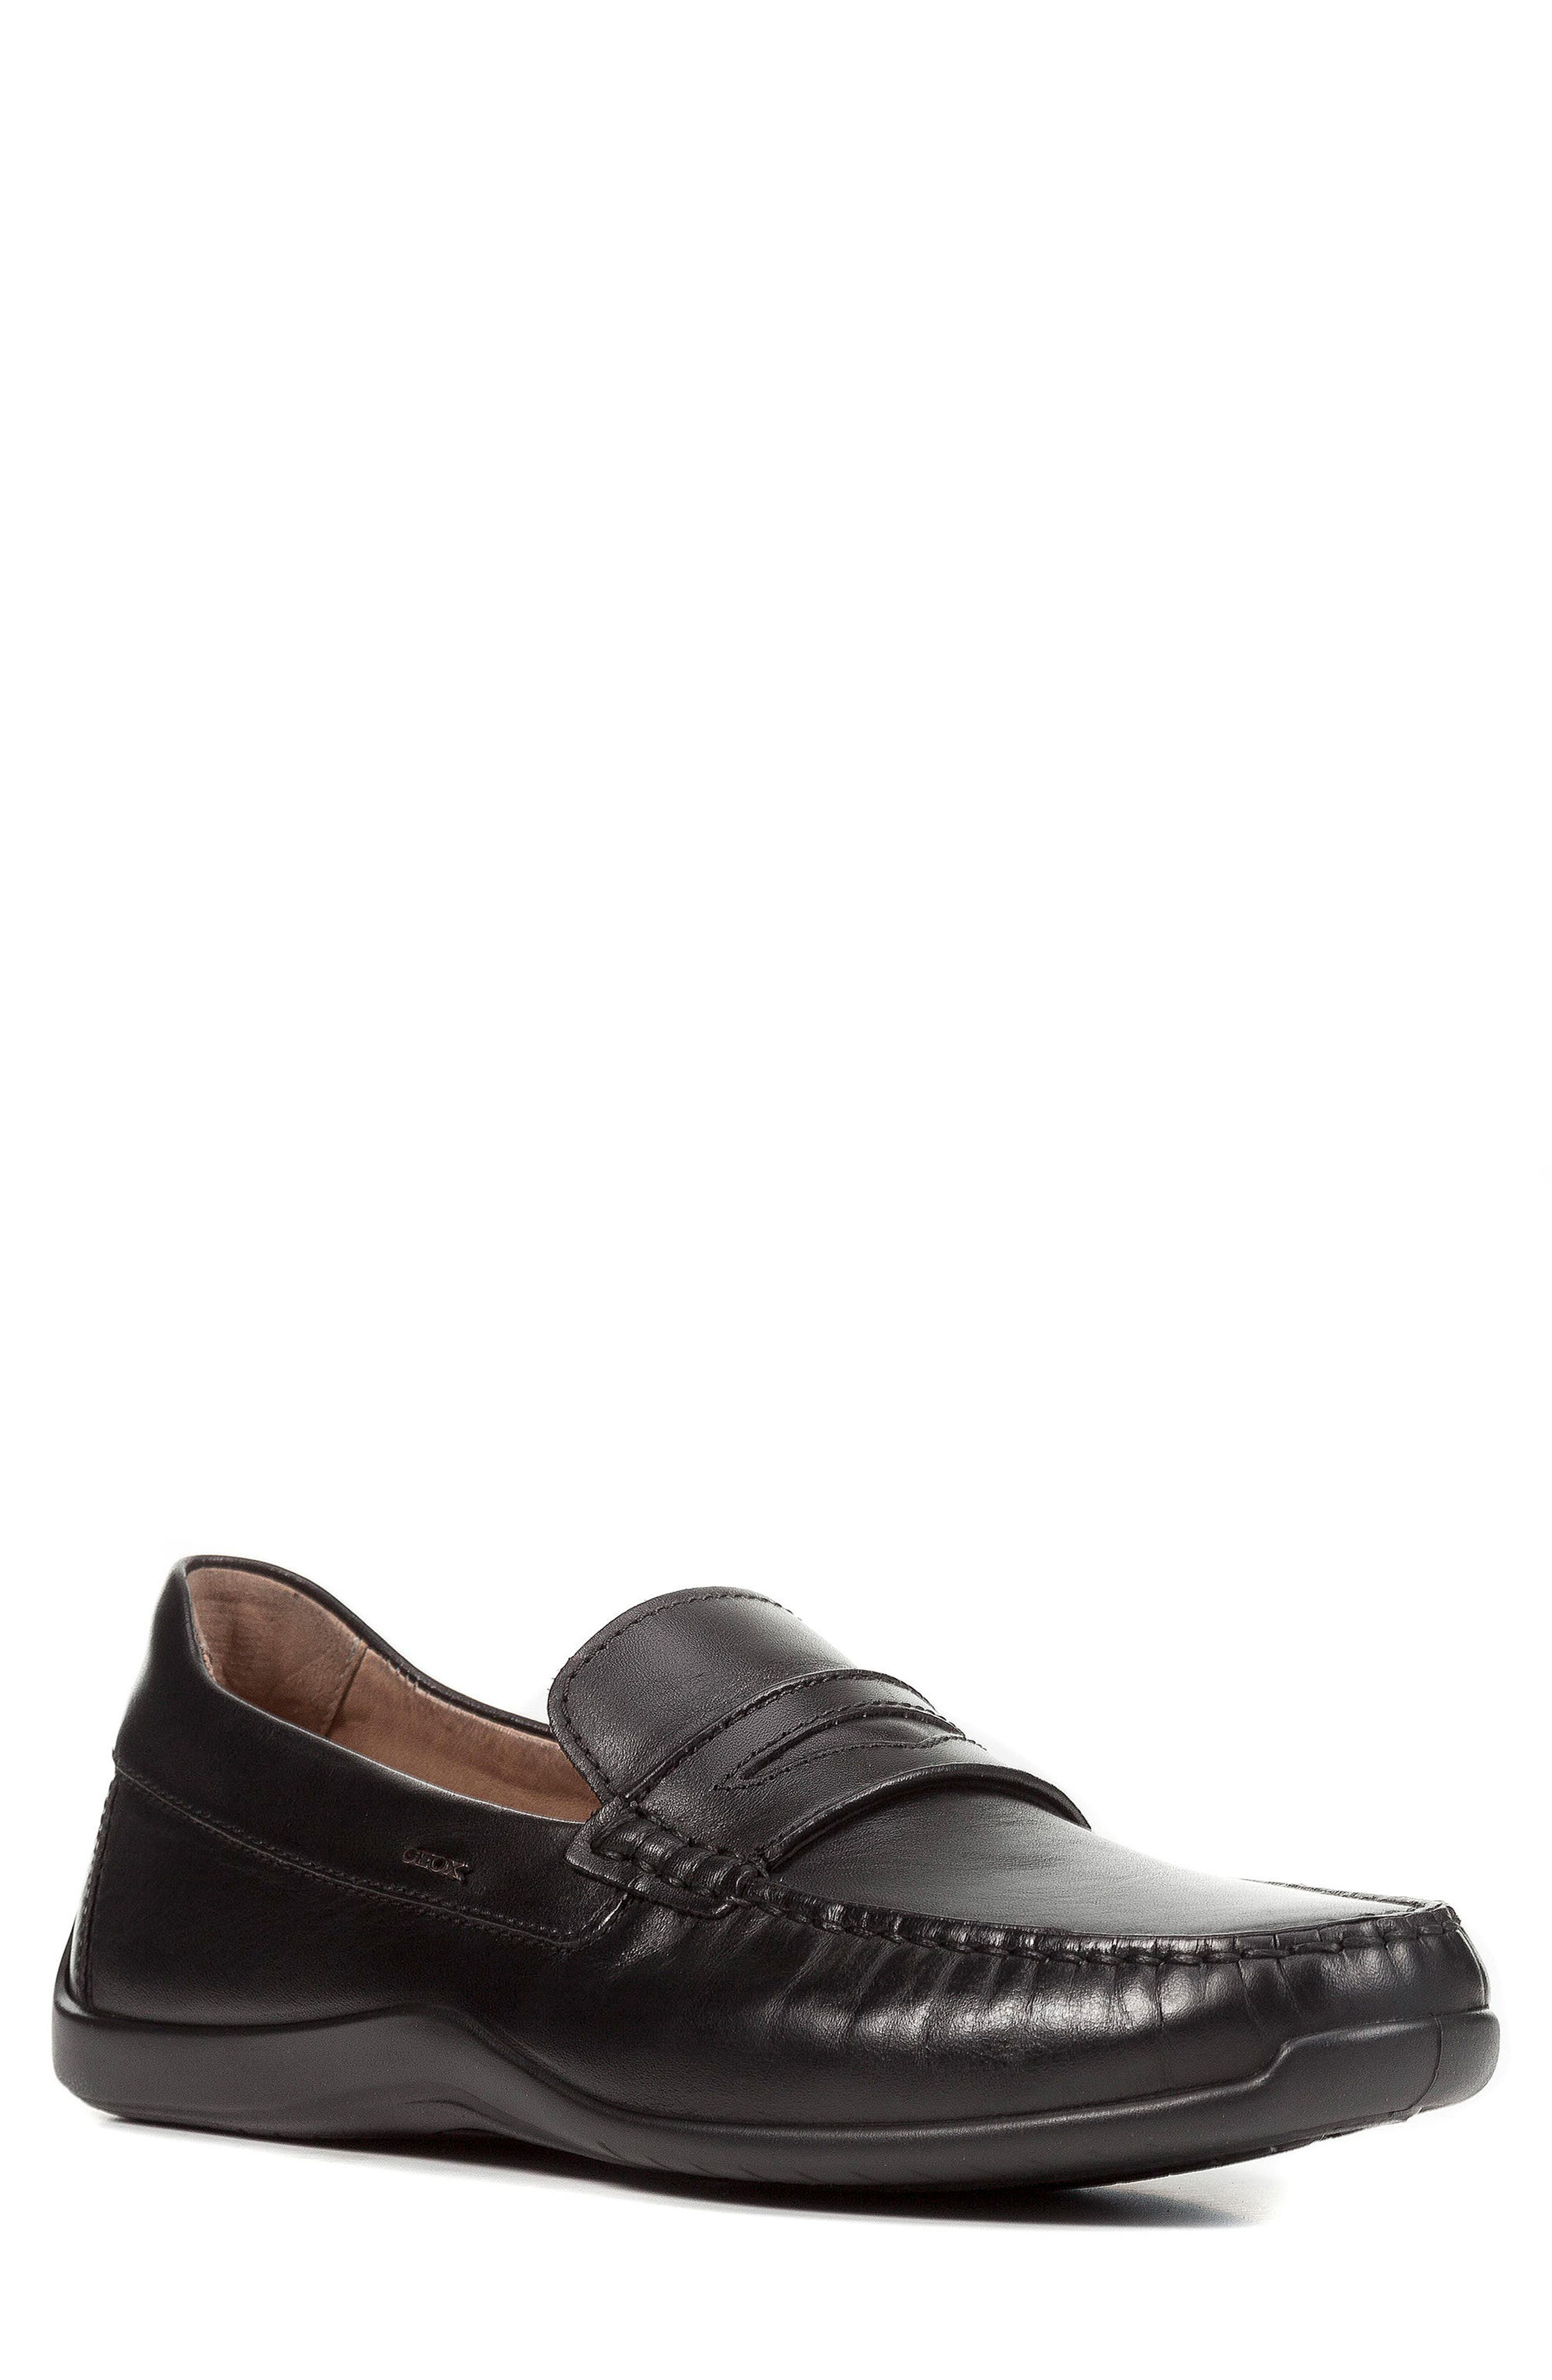 Xense Penny Loafer,                         Main,                         color, Black Leather